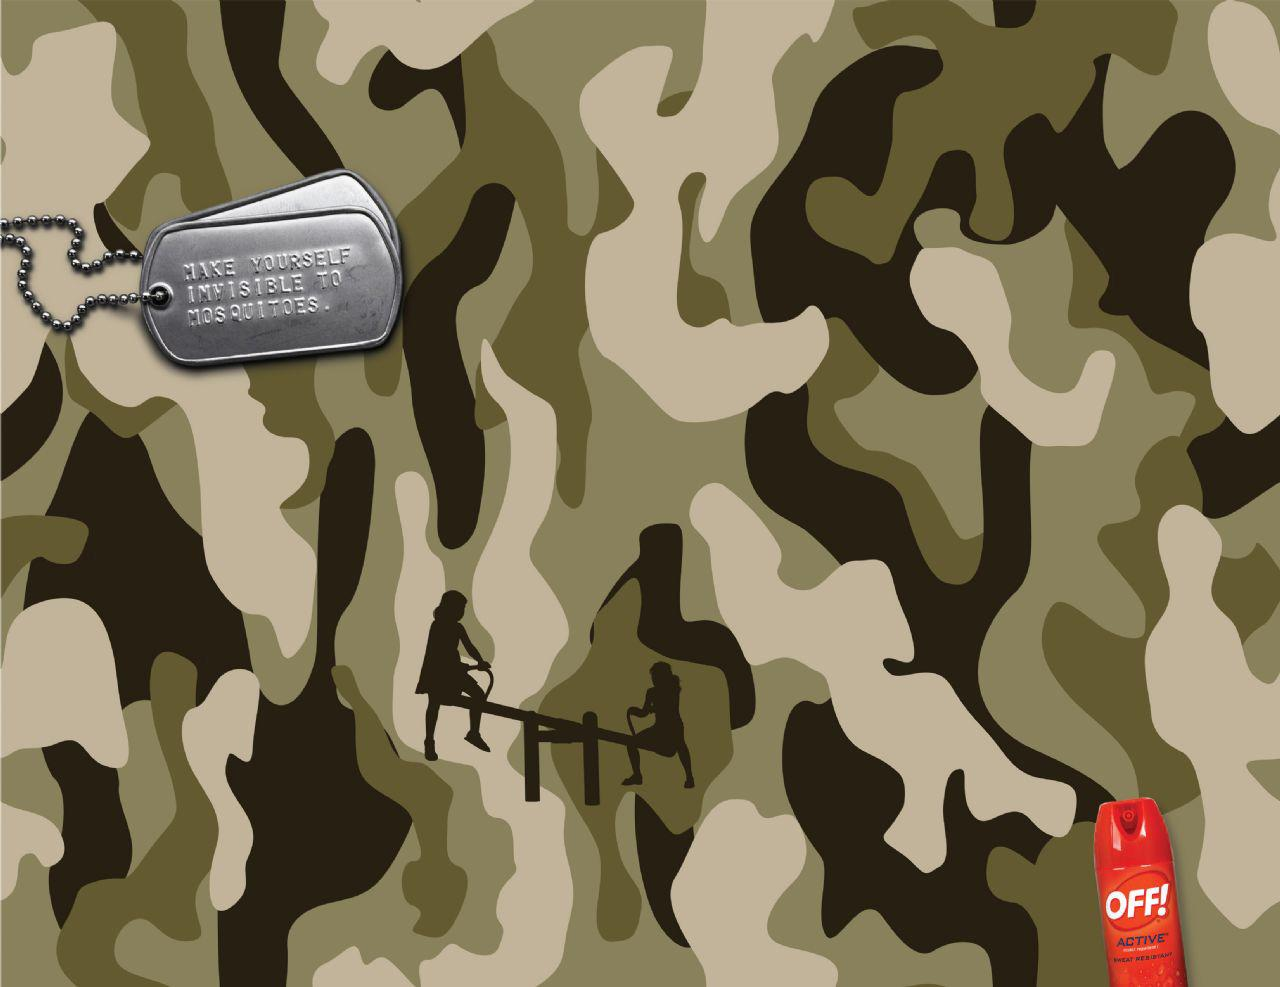 Off! Print Ad -  Invisible camouflage, Seesaw